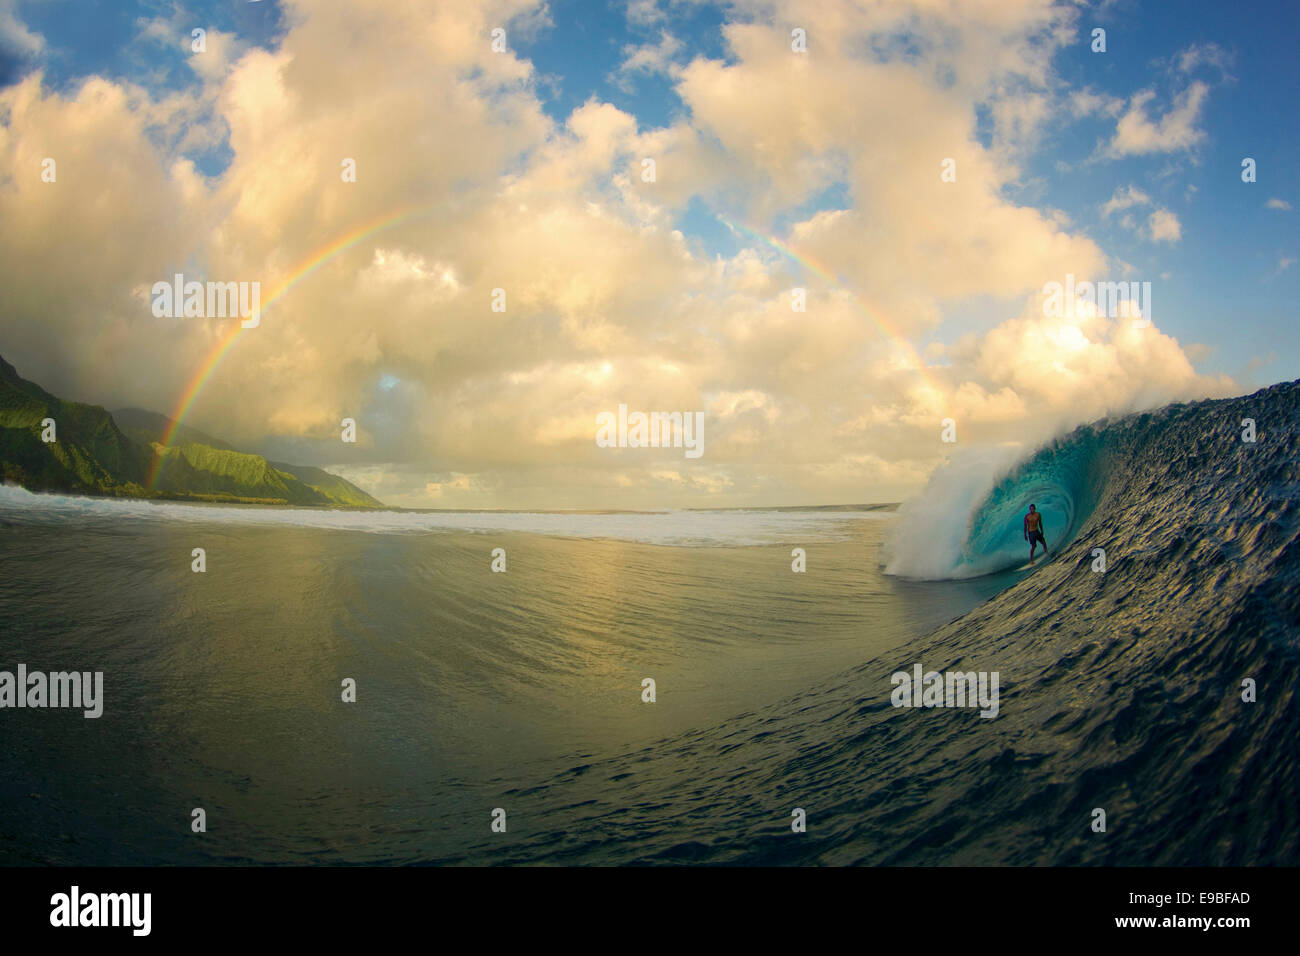 Teahupoo, Tahiti. 14th July, 2011. Surfer CHRISTIAN REDONGO surfing in a barrel at Teahupoo, one of the world's - Stock Image